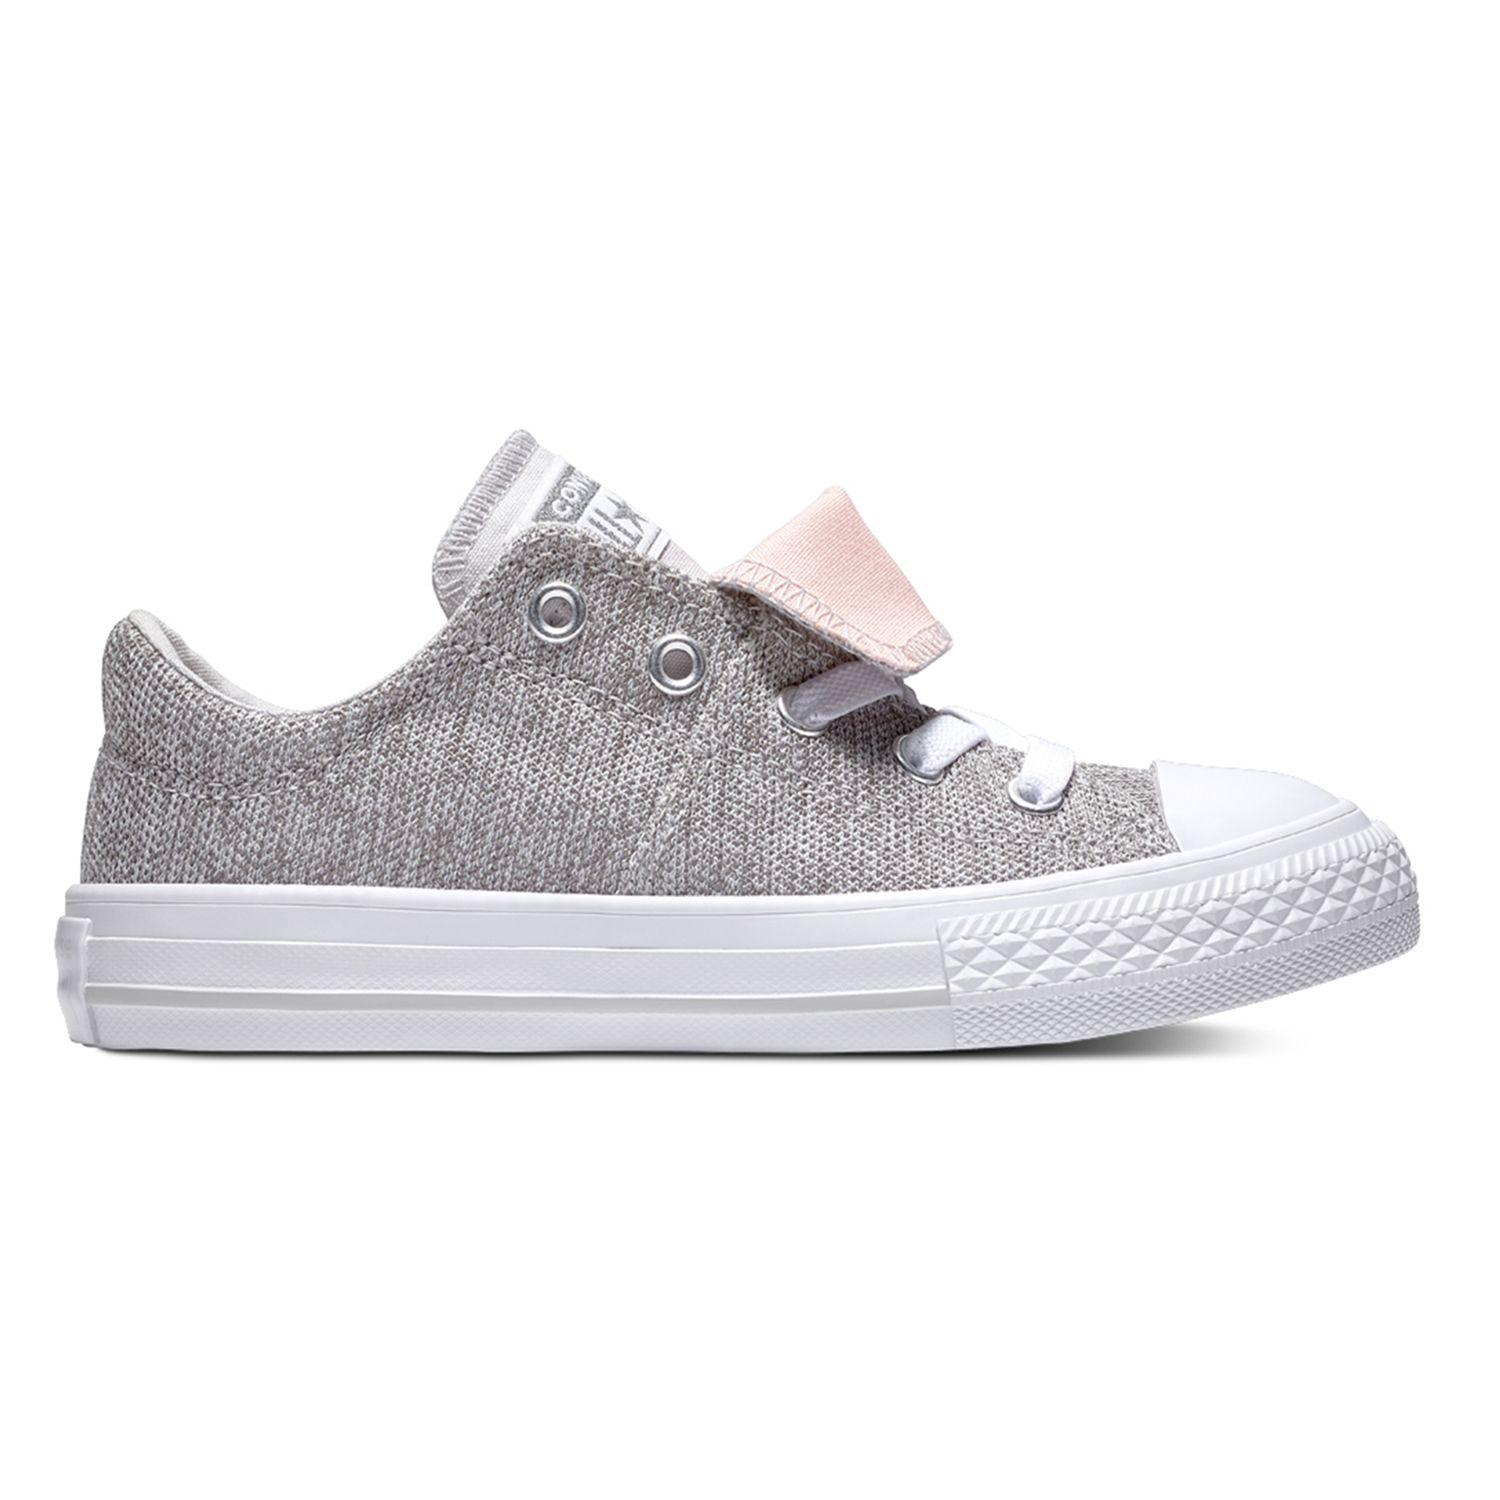 converse clothing, shoes \u0026 accessories kohl\u0027s  girls\u0027 converse chuck taylor all star maddie double tongue sneakers